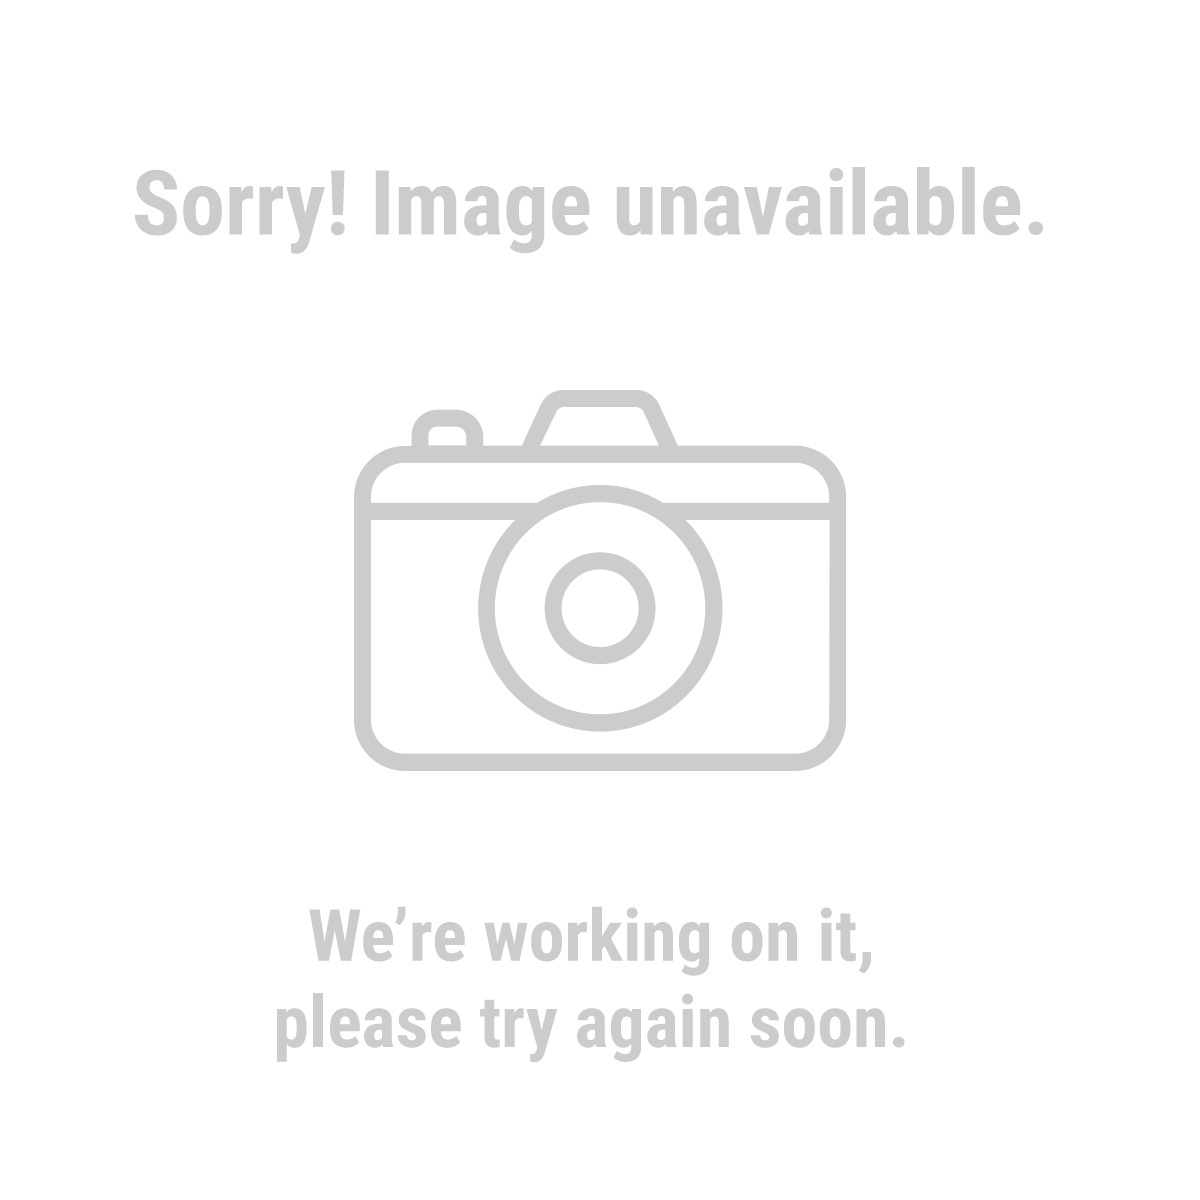 "HFT® 45882 3/4"" x 8-1/2 ft.  Double-Sided Mounting Tape"